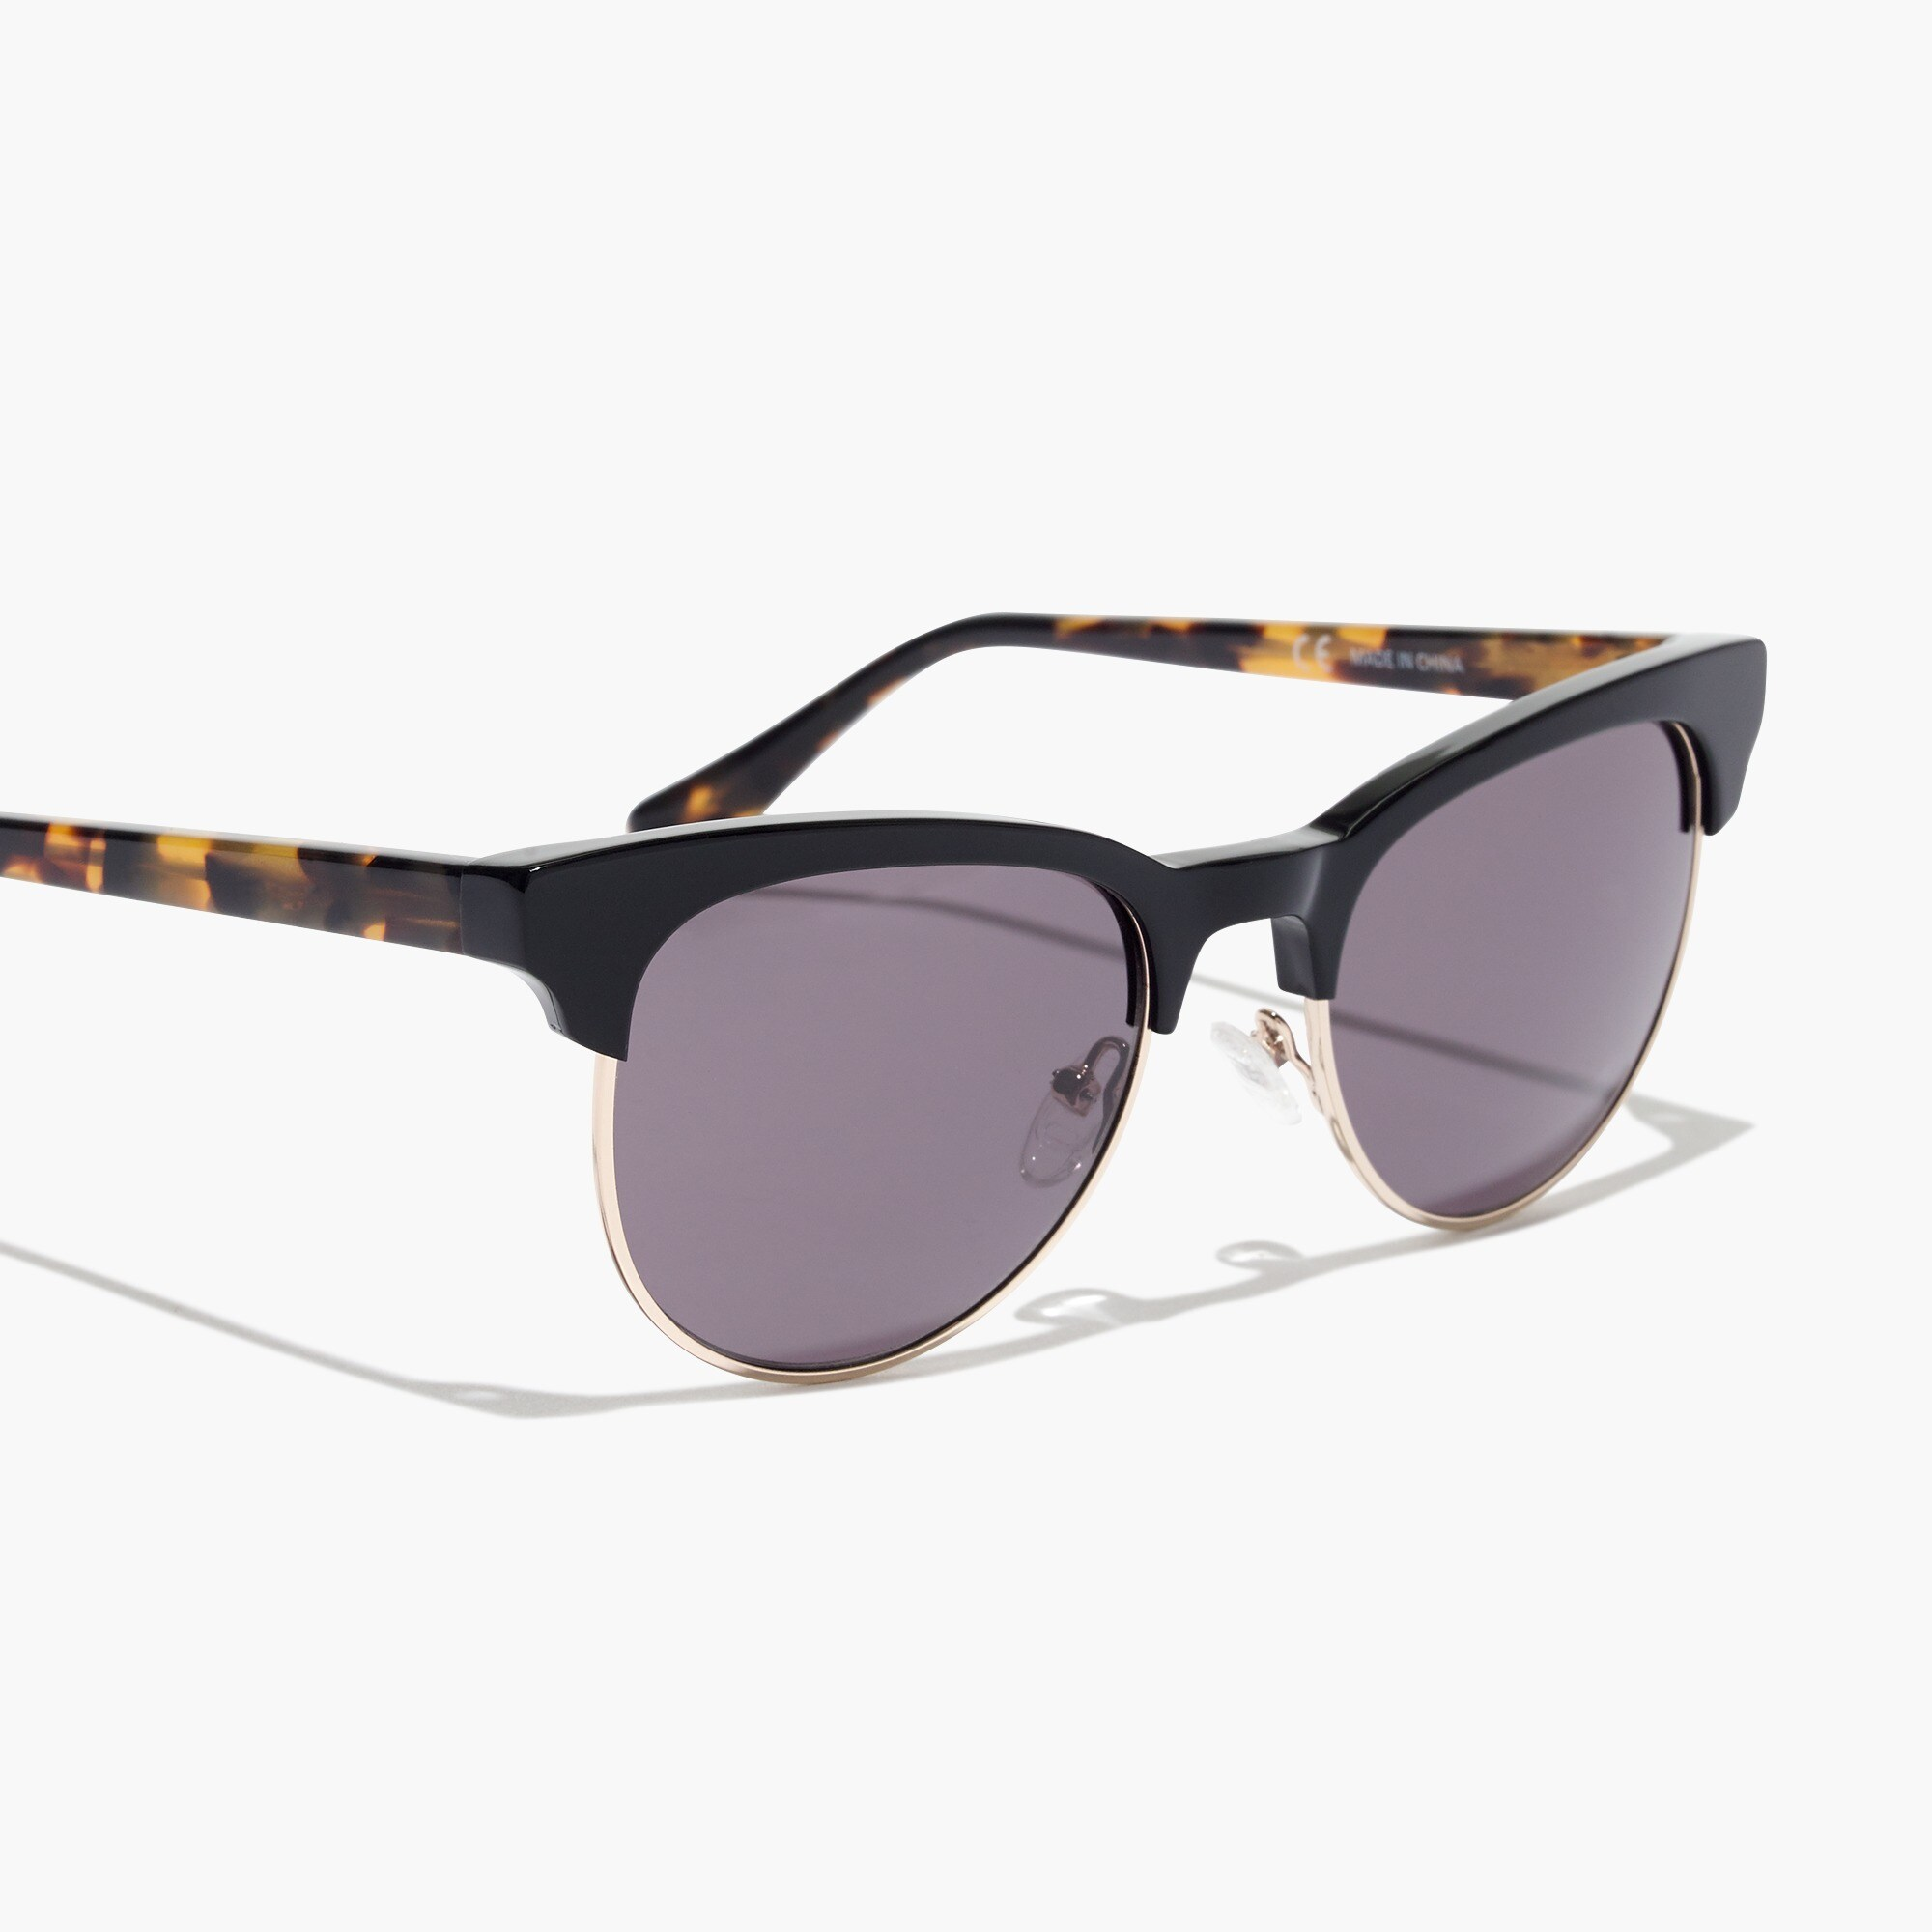 Image 1 for Boardwalk sunglasses